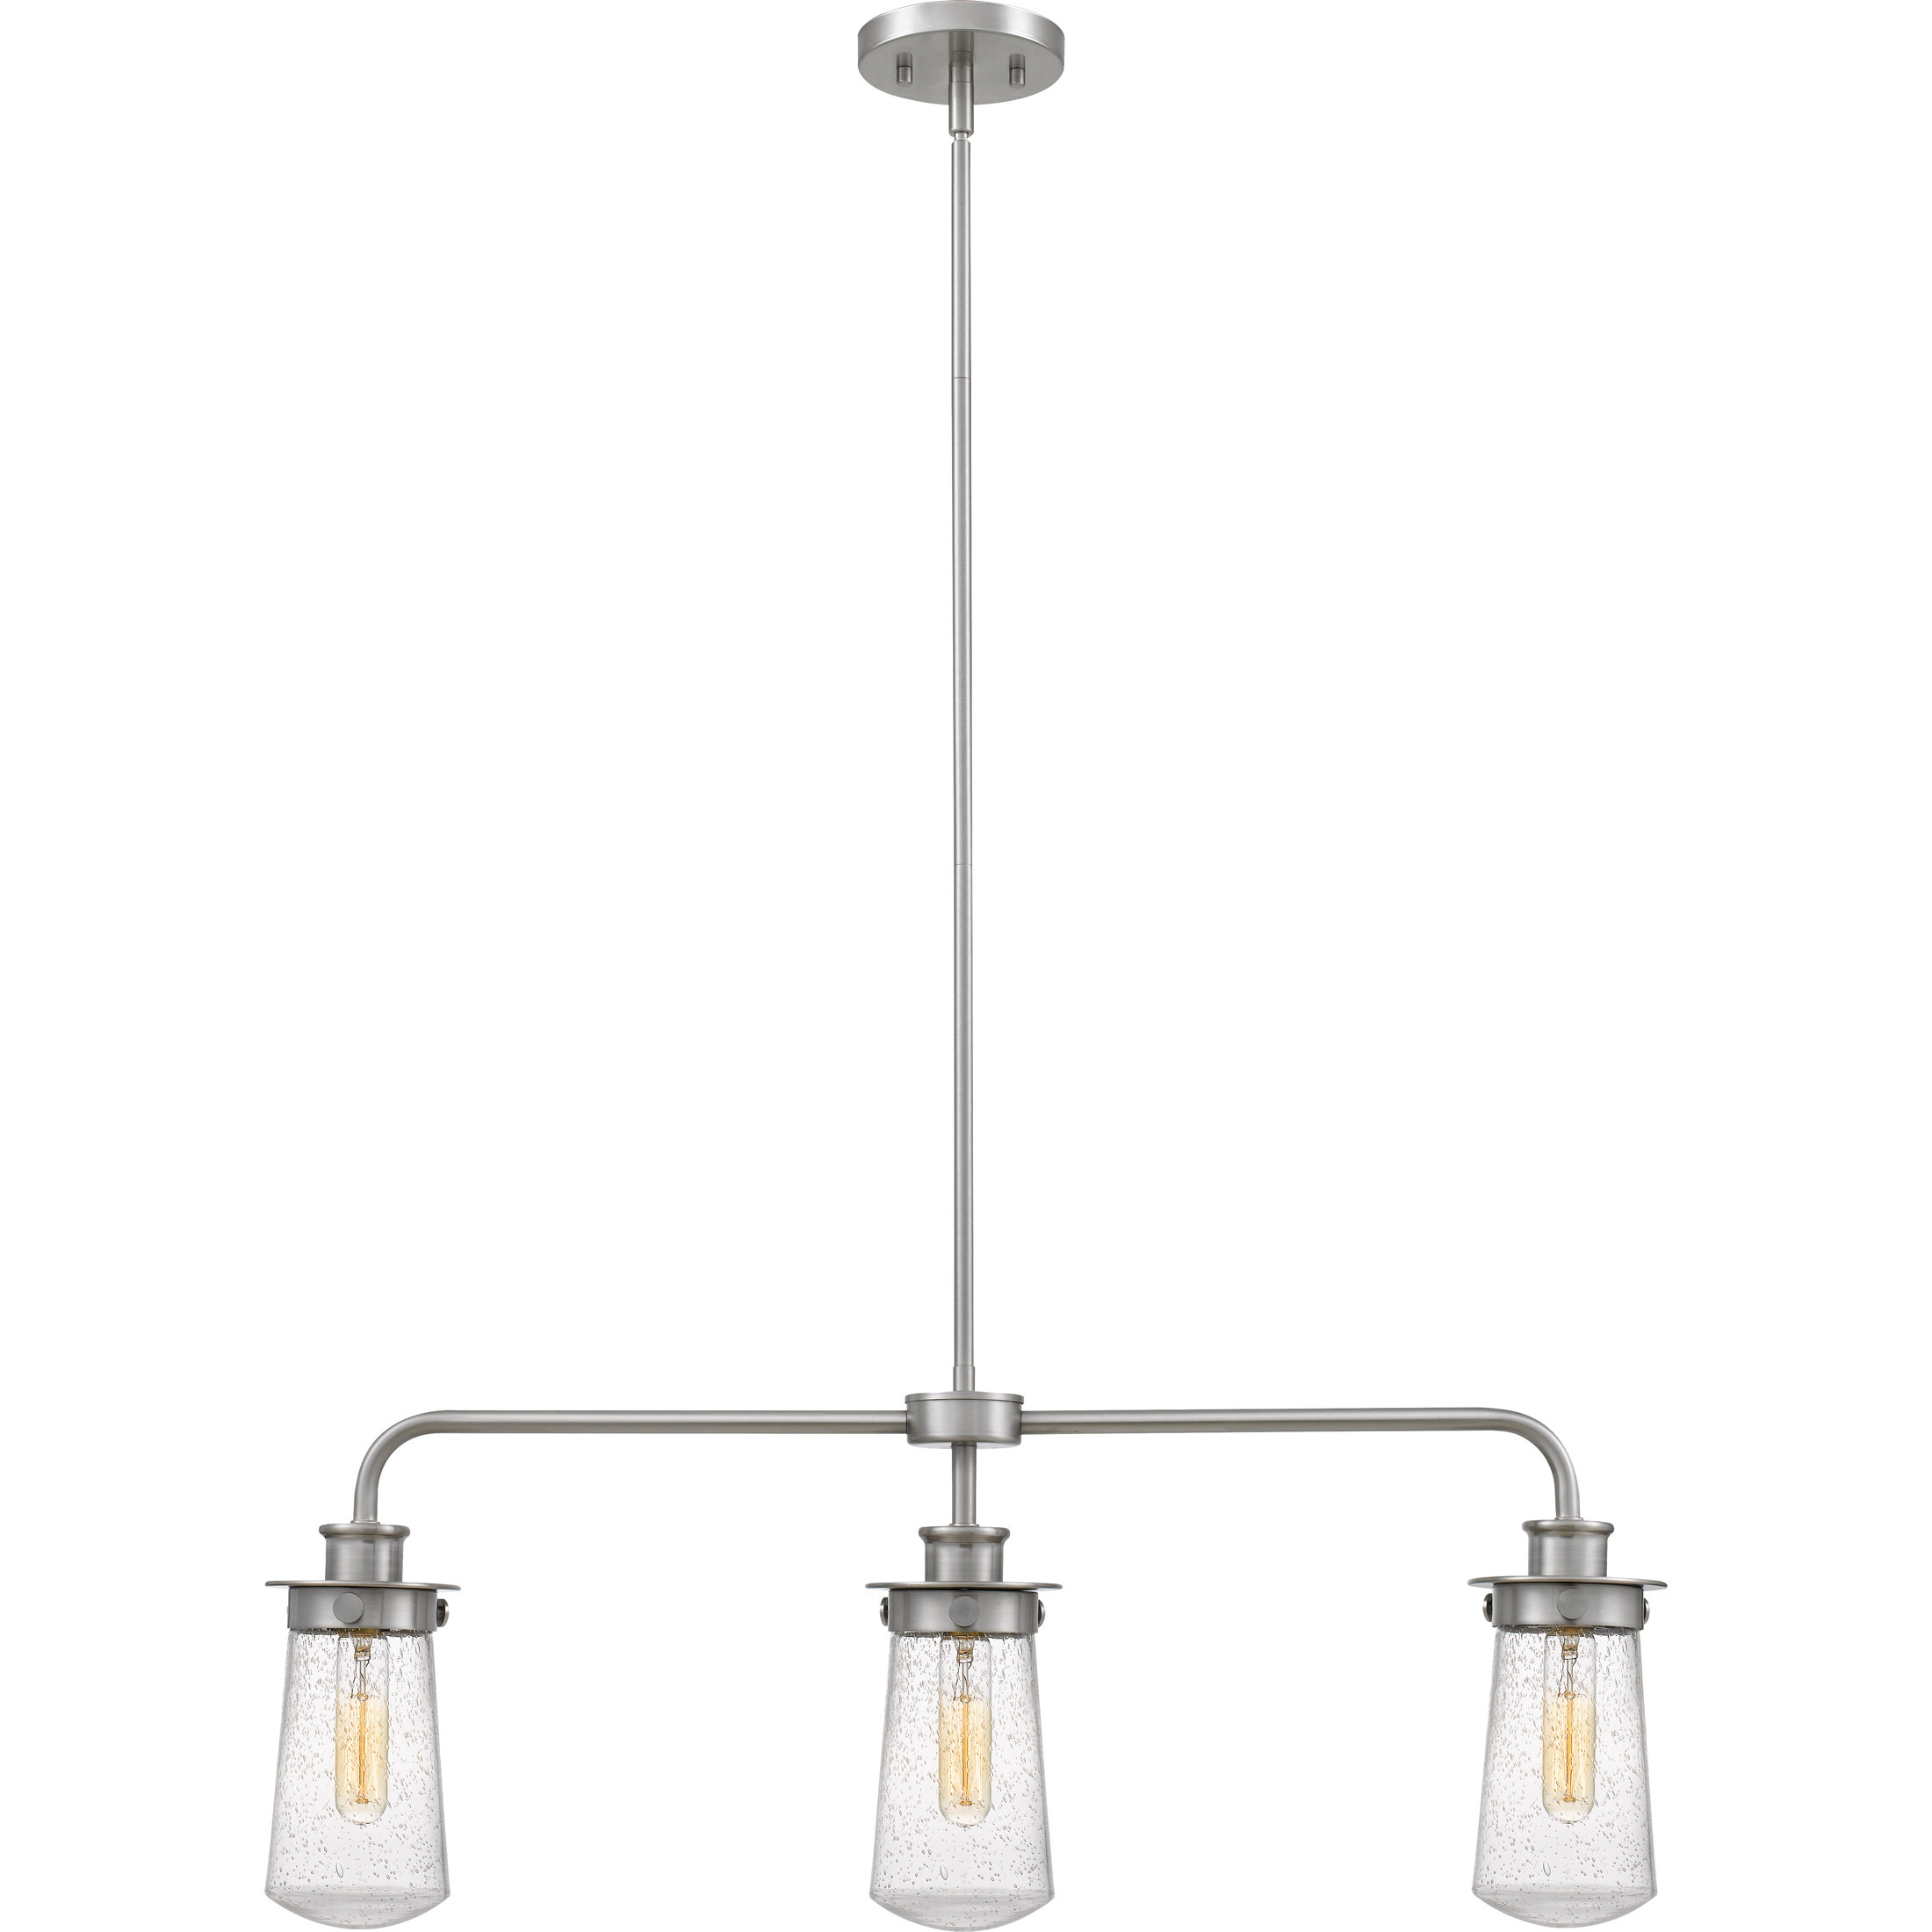 Most Current Simsbury 3 Light Kitchen Island Linear Pendant Regarding Cinchring 4 Light Kitchen Island Linear Pendants (View 15 of 25)